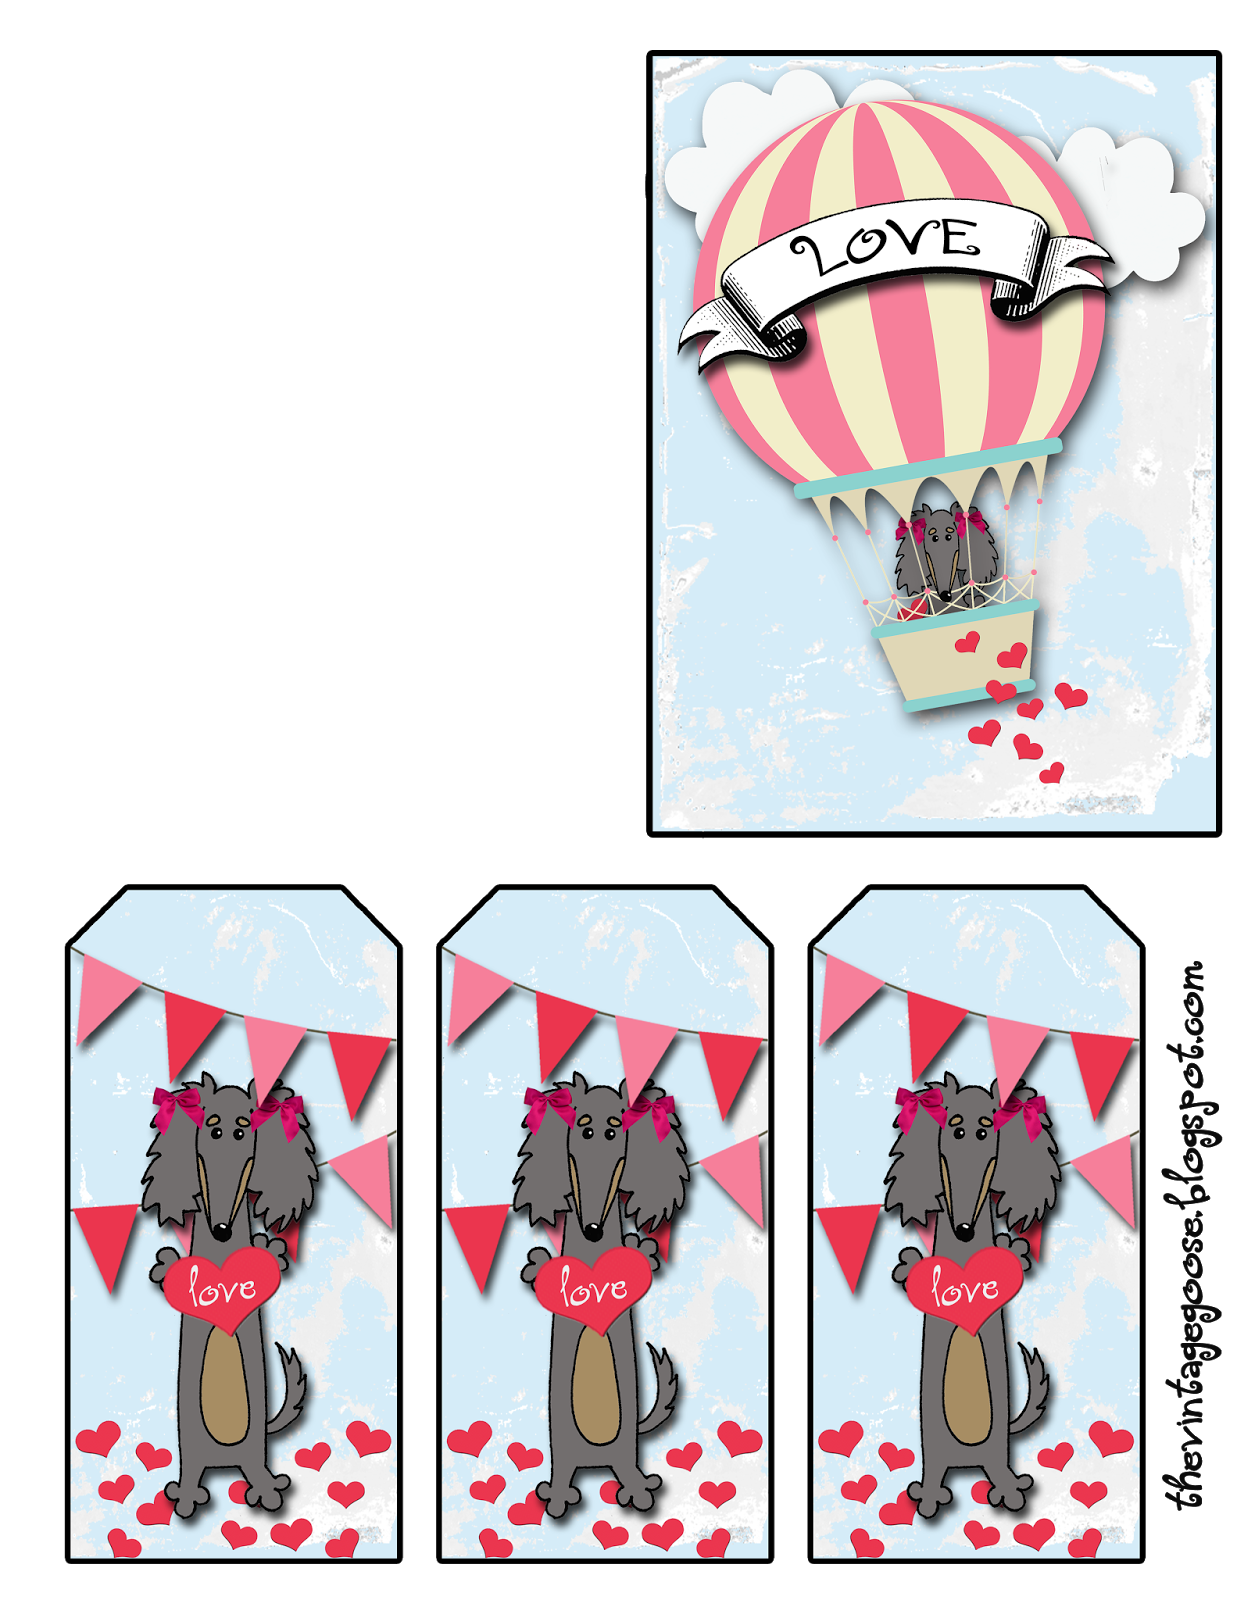 Crafts clipart handmade craft. Free valentine card and